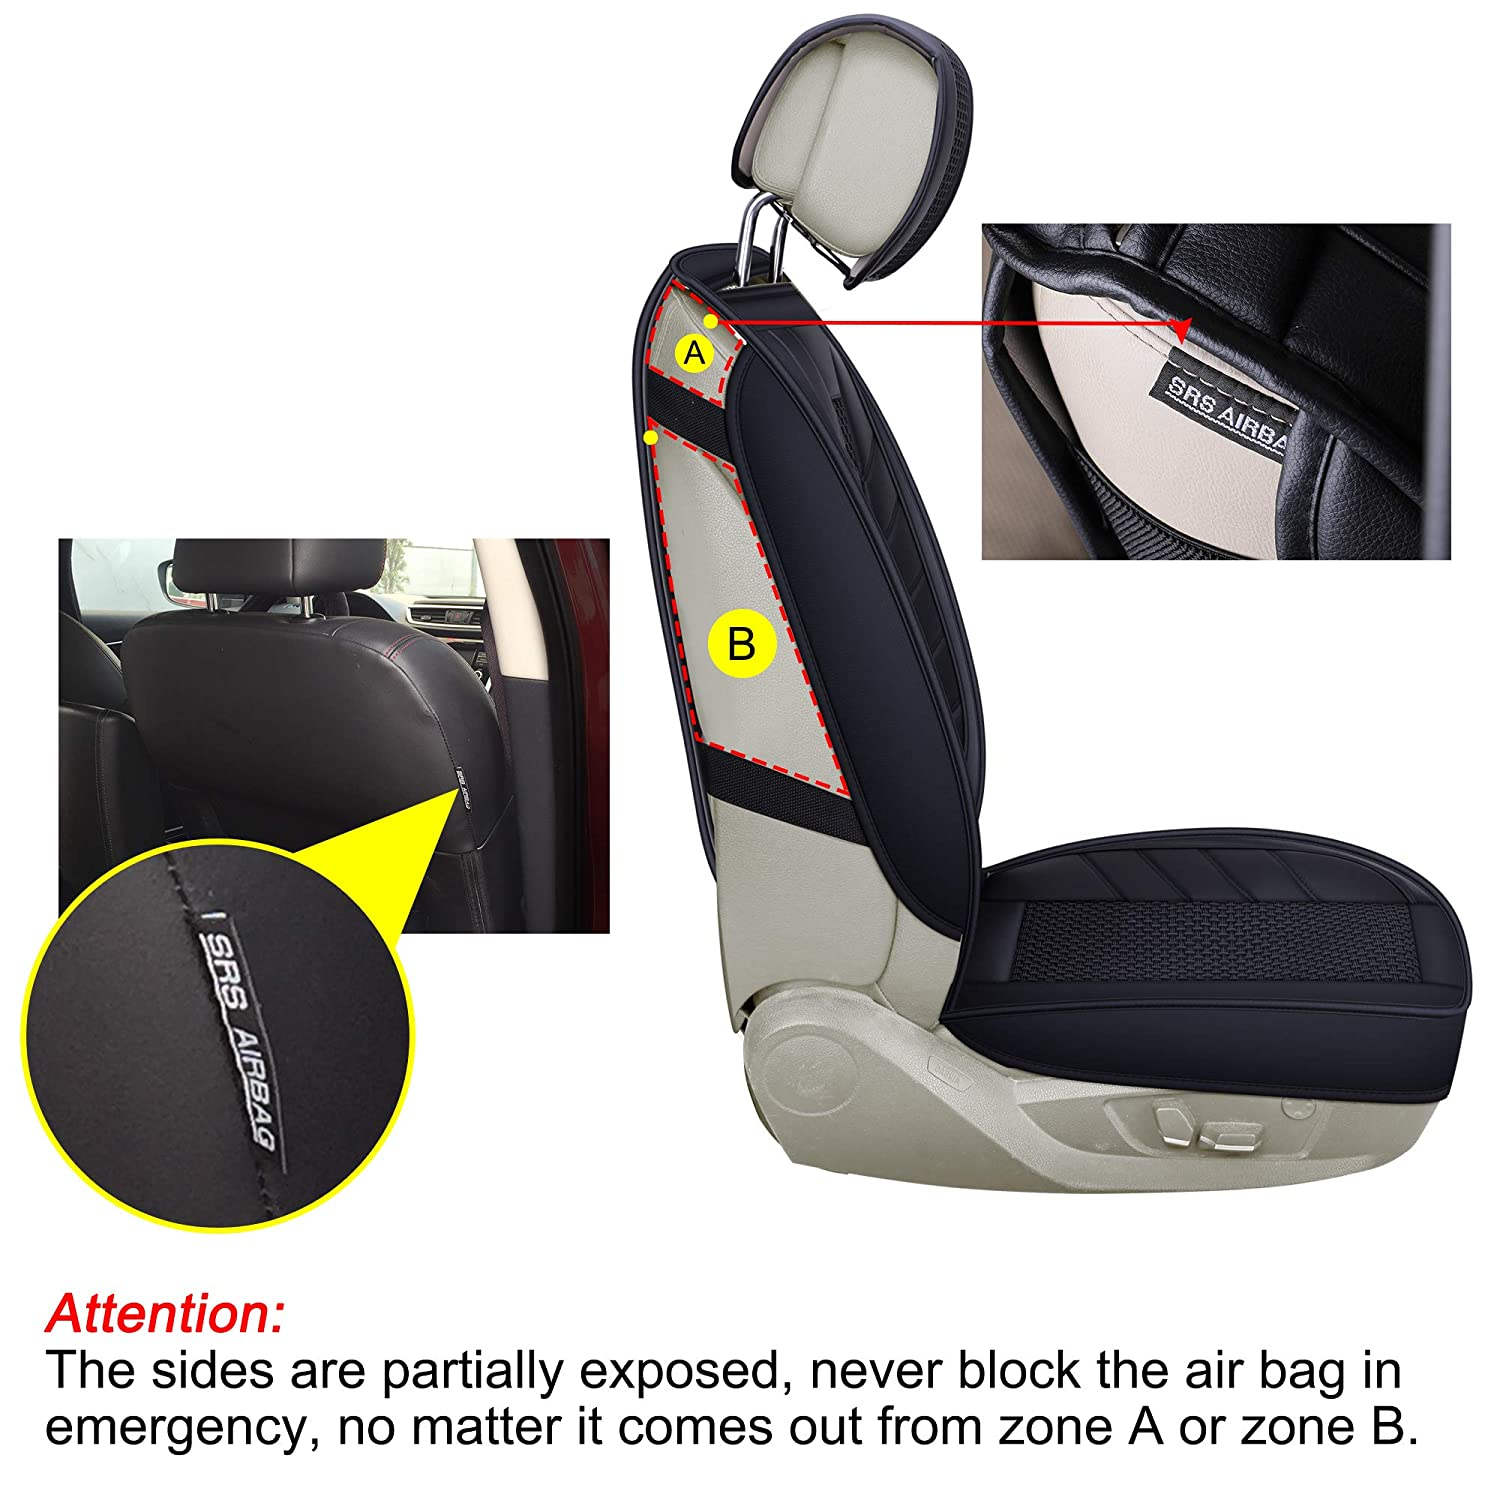 Black Full Set LUCKYMAN CLUB Breathable 5 Car Seat Covers Fit for Most SUV Sedan Truck Nicely Fit for 2018 Chevy Equinox Cruze 2019 Toyota Tacoma TRD PRO Double Cab RAV4 Corolla Camry